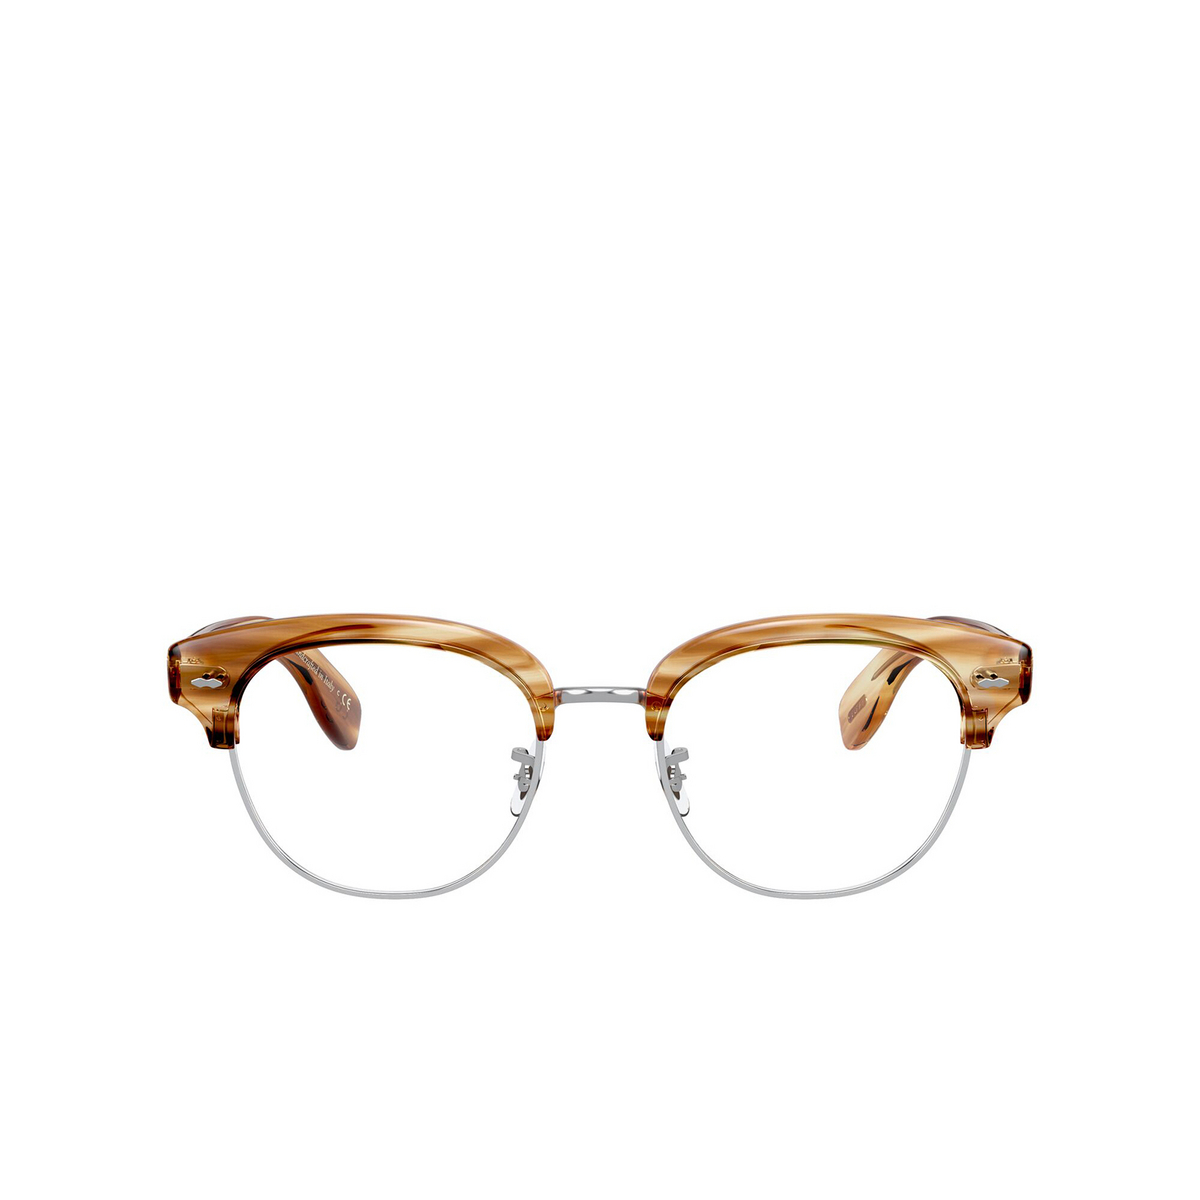 Oliver Peoples® Square Eyeglasses: Cary Grant 2 OV5436 color Honey Vsb 1674 - front view.